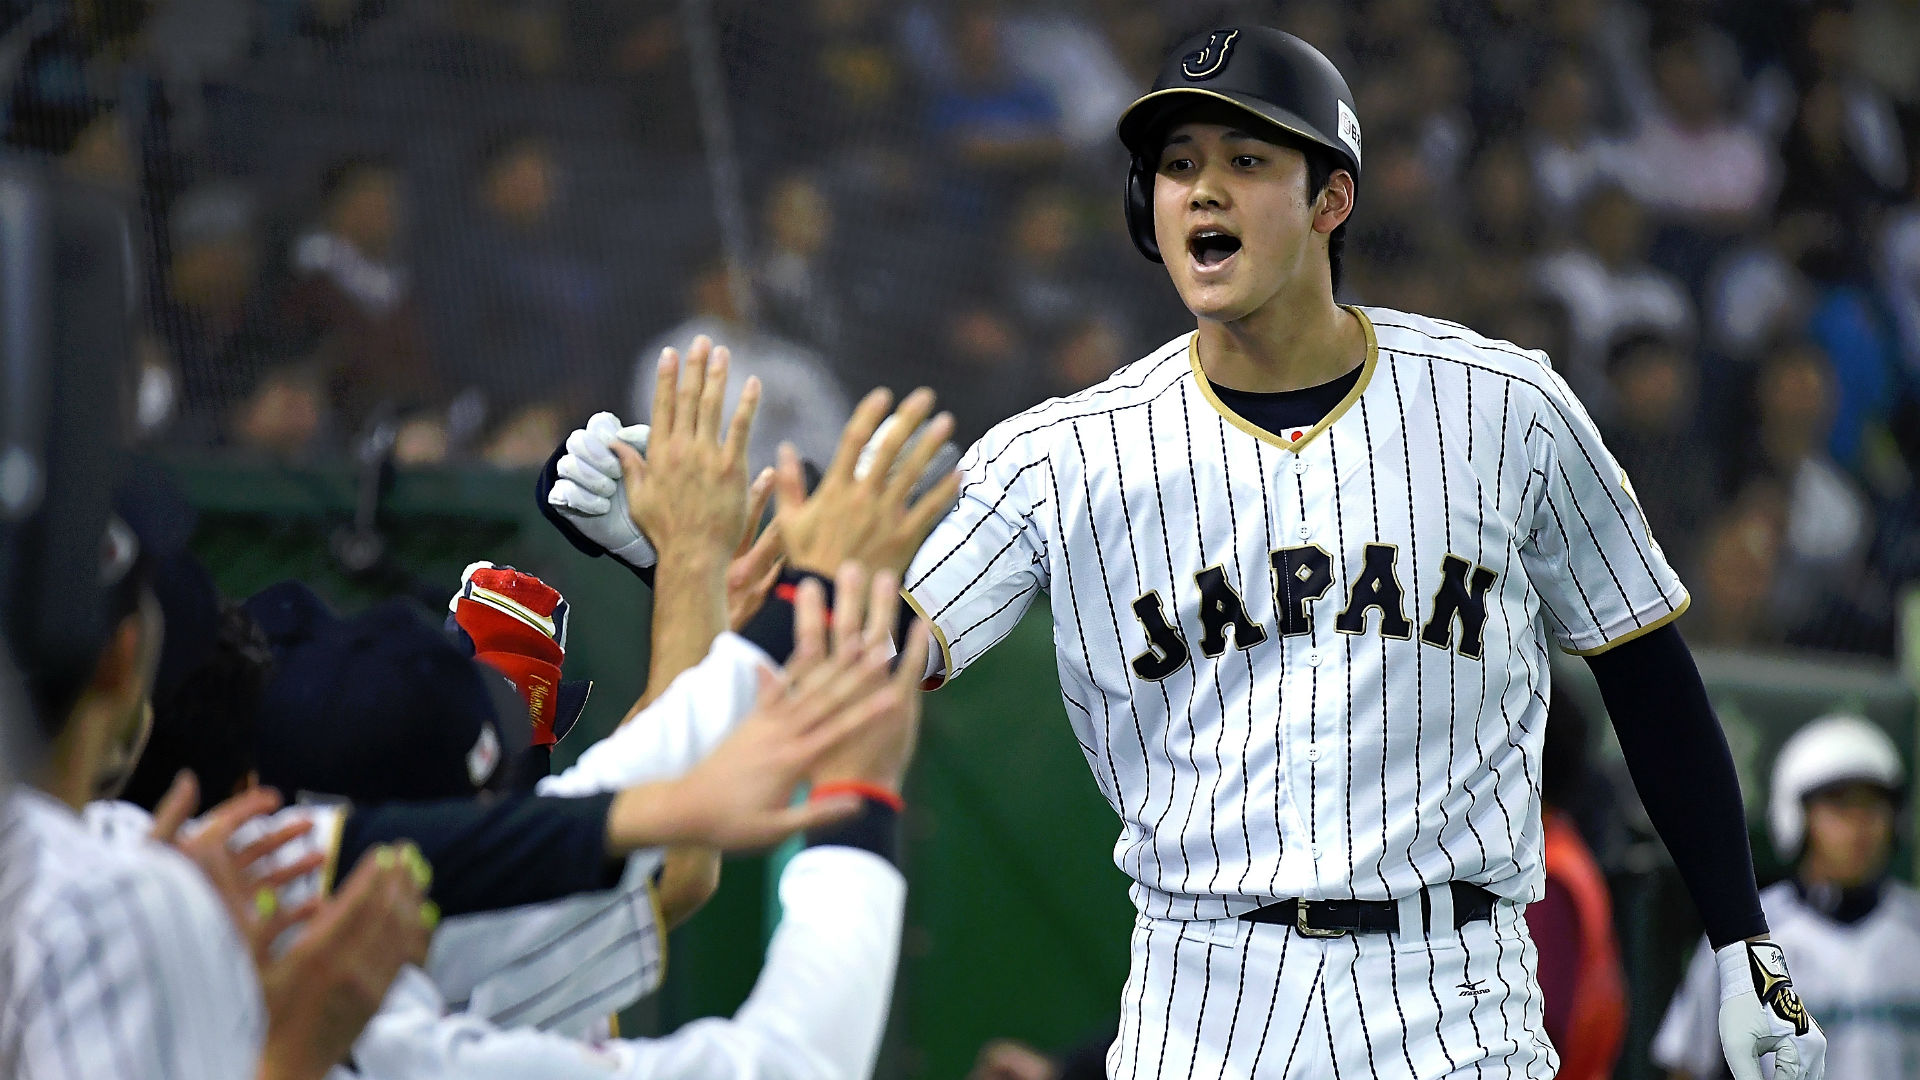 MLBPA Agrees to Extend Self-Imposed Deadline for New Japanese Posting Agreement